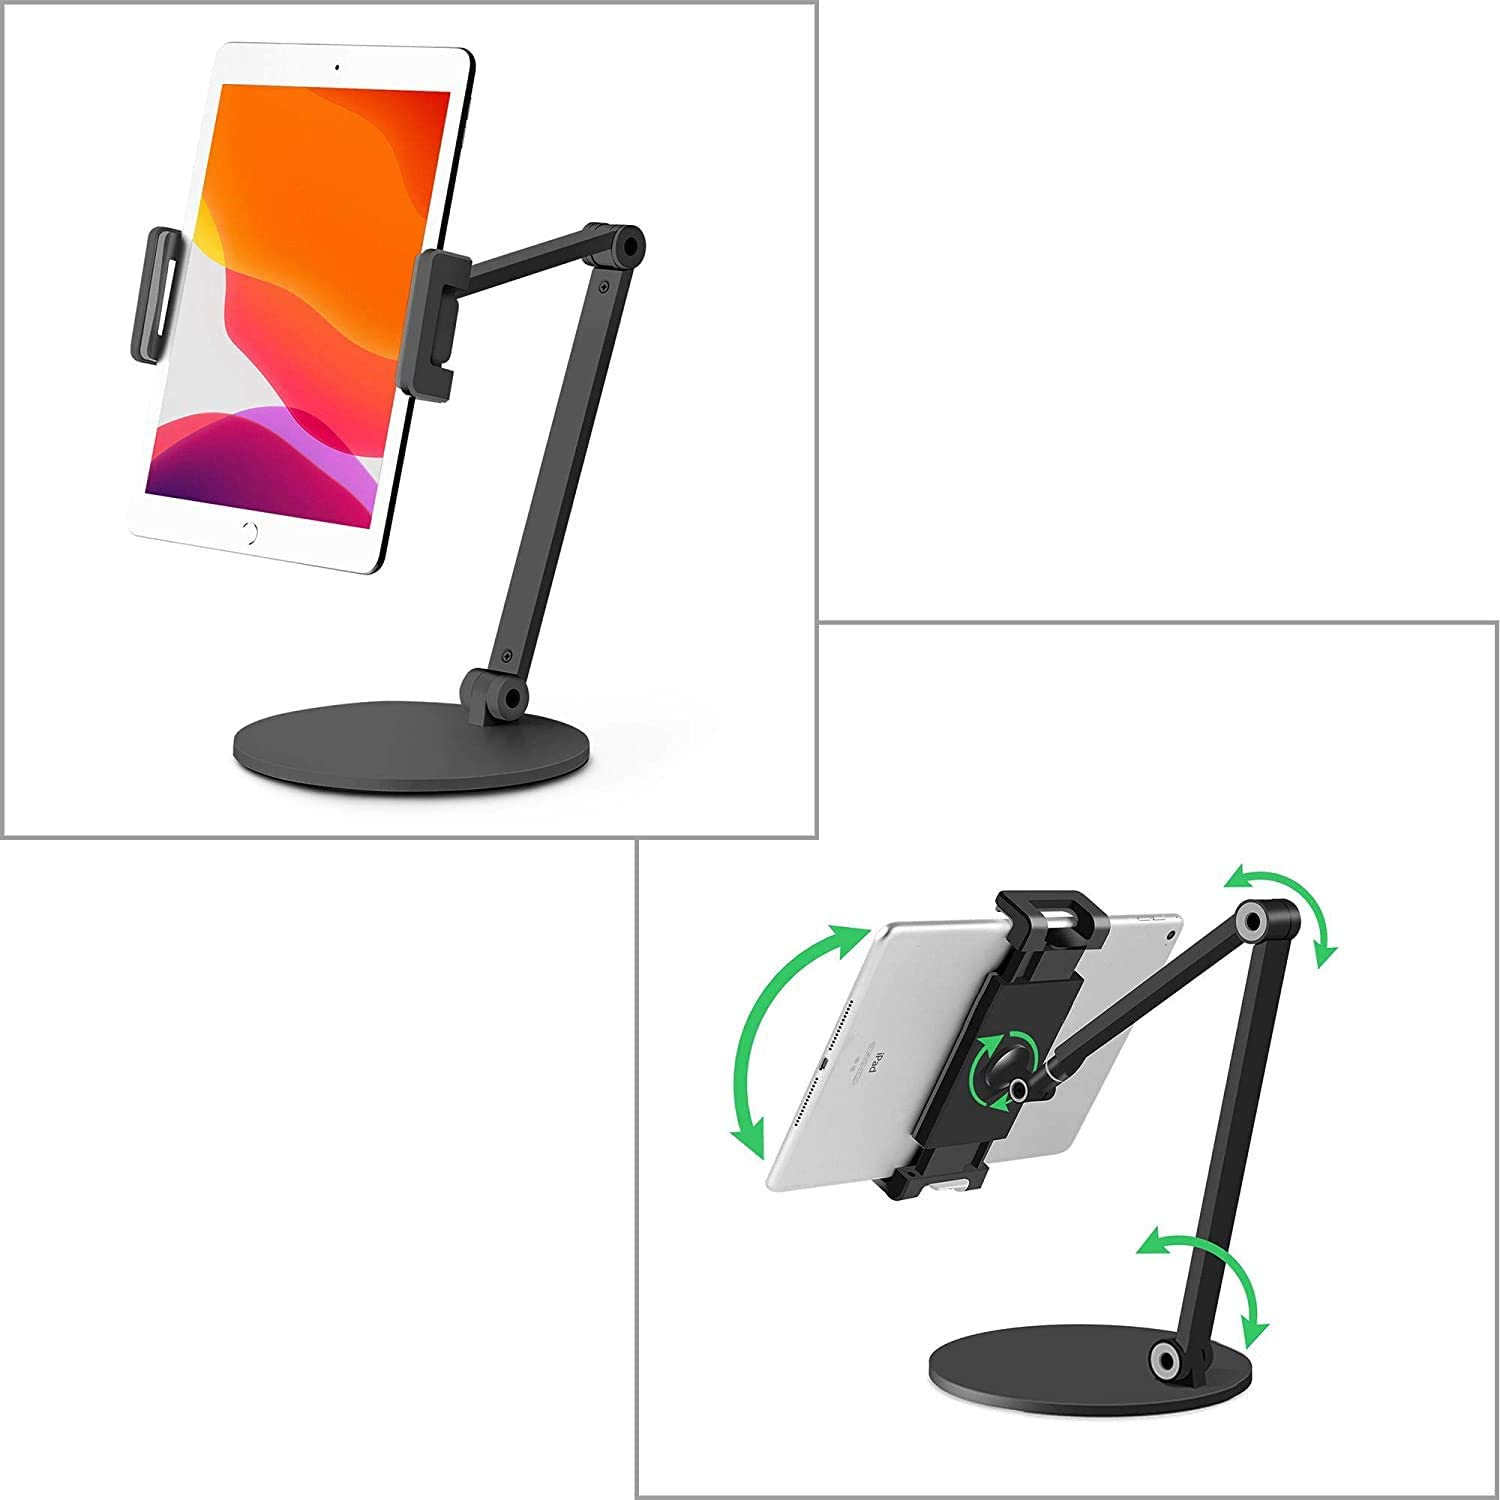 "MagicHold Aluminum Long Arm Tablet Desk Stand Mount Compatible with iPhone/iPad/iPad Mini/iPad Pro 12.9""/ Any Phone/Tablets/eBook Reader 4-13 inch,360° Swivel for Home,Office,Kitchen (Black)"